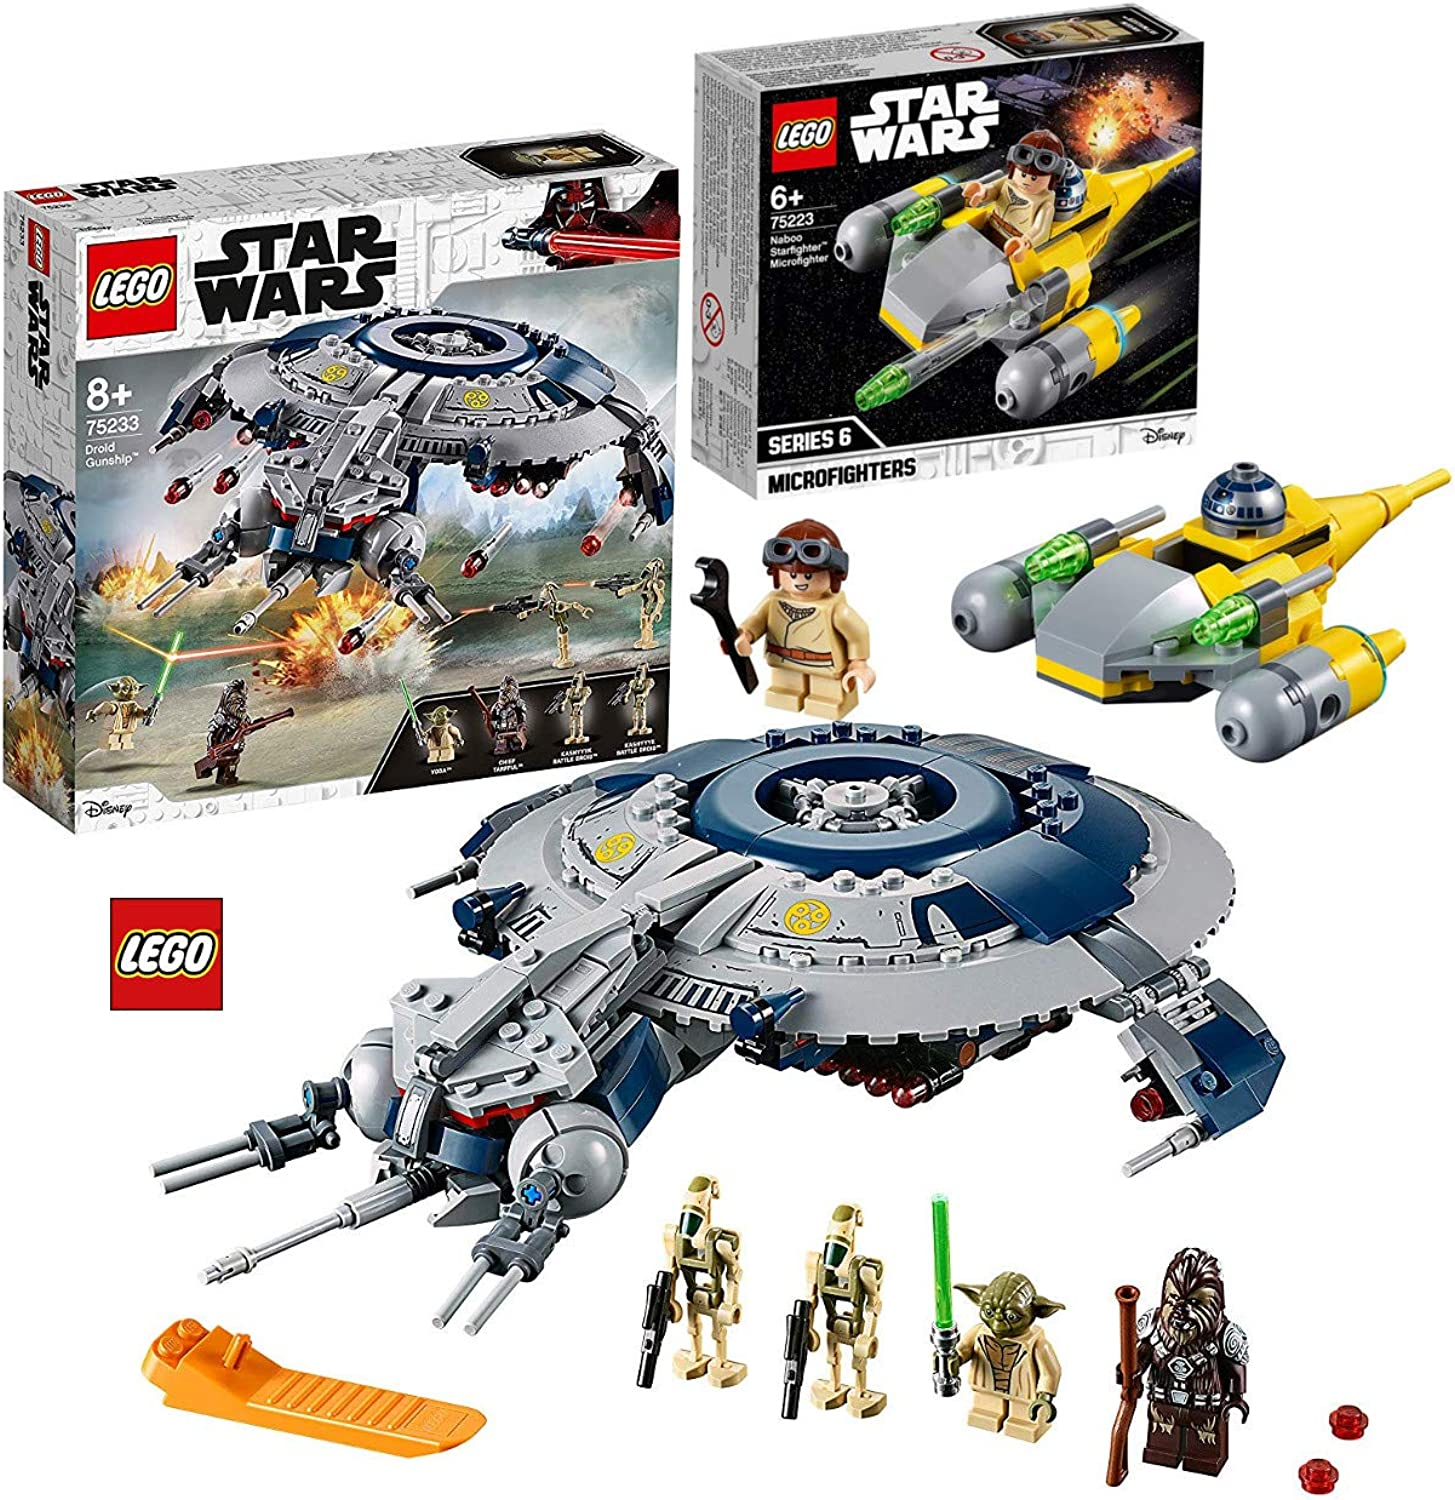 LEGO Star Wars 75233 Droid Gunship + LEGOStar Wars 75223 Naboo Starfighter Microfighter